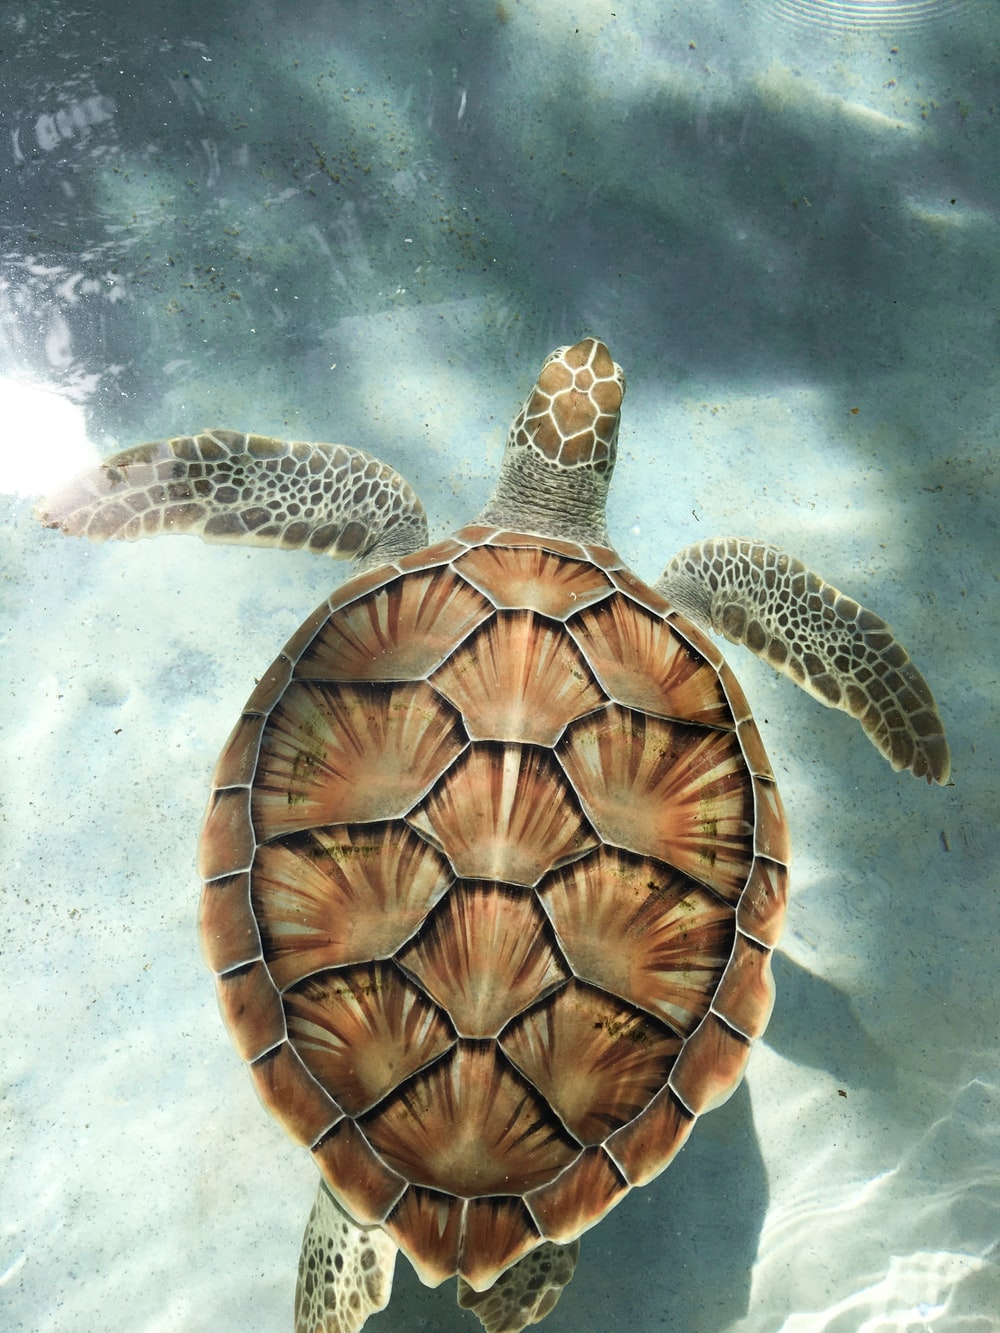 brown turtle swimming in water